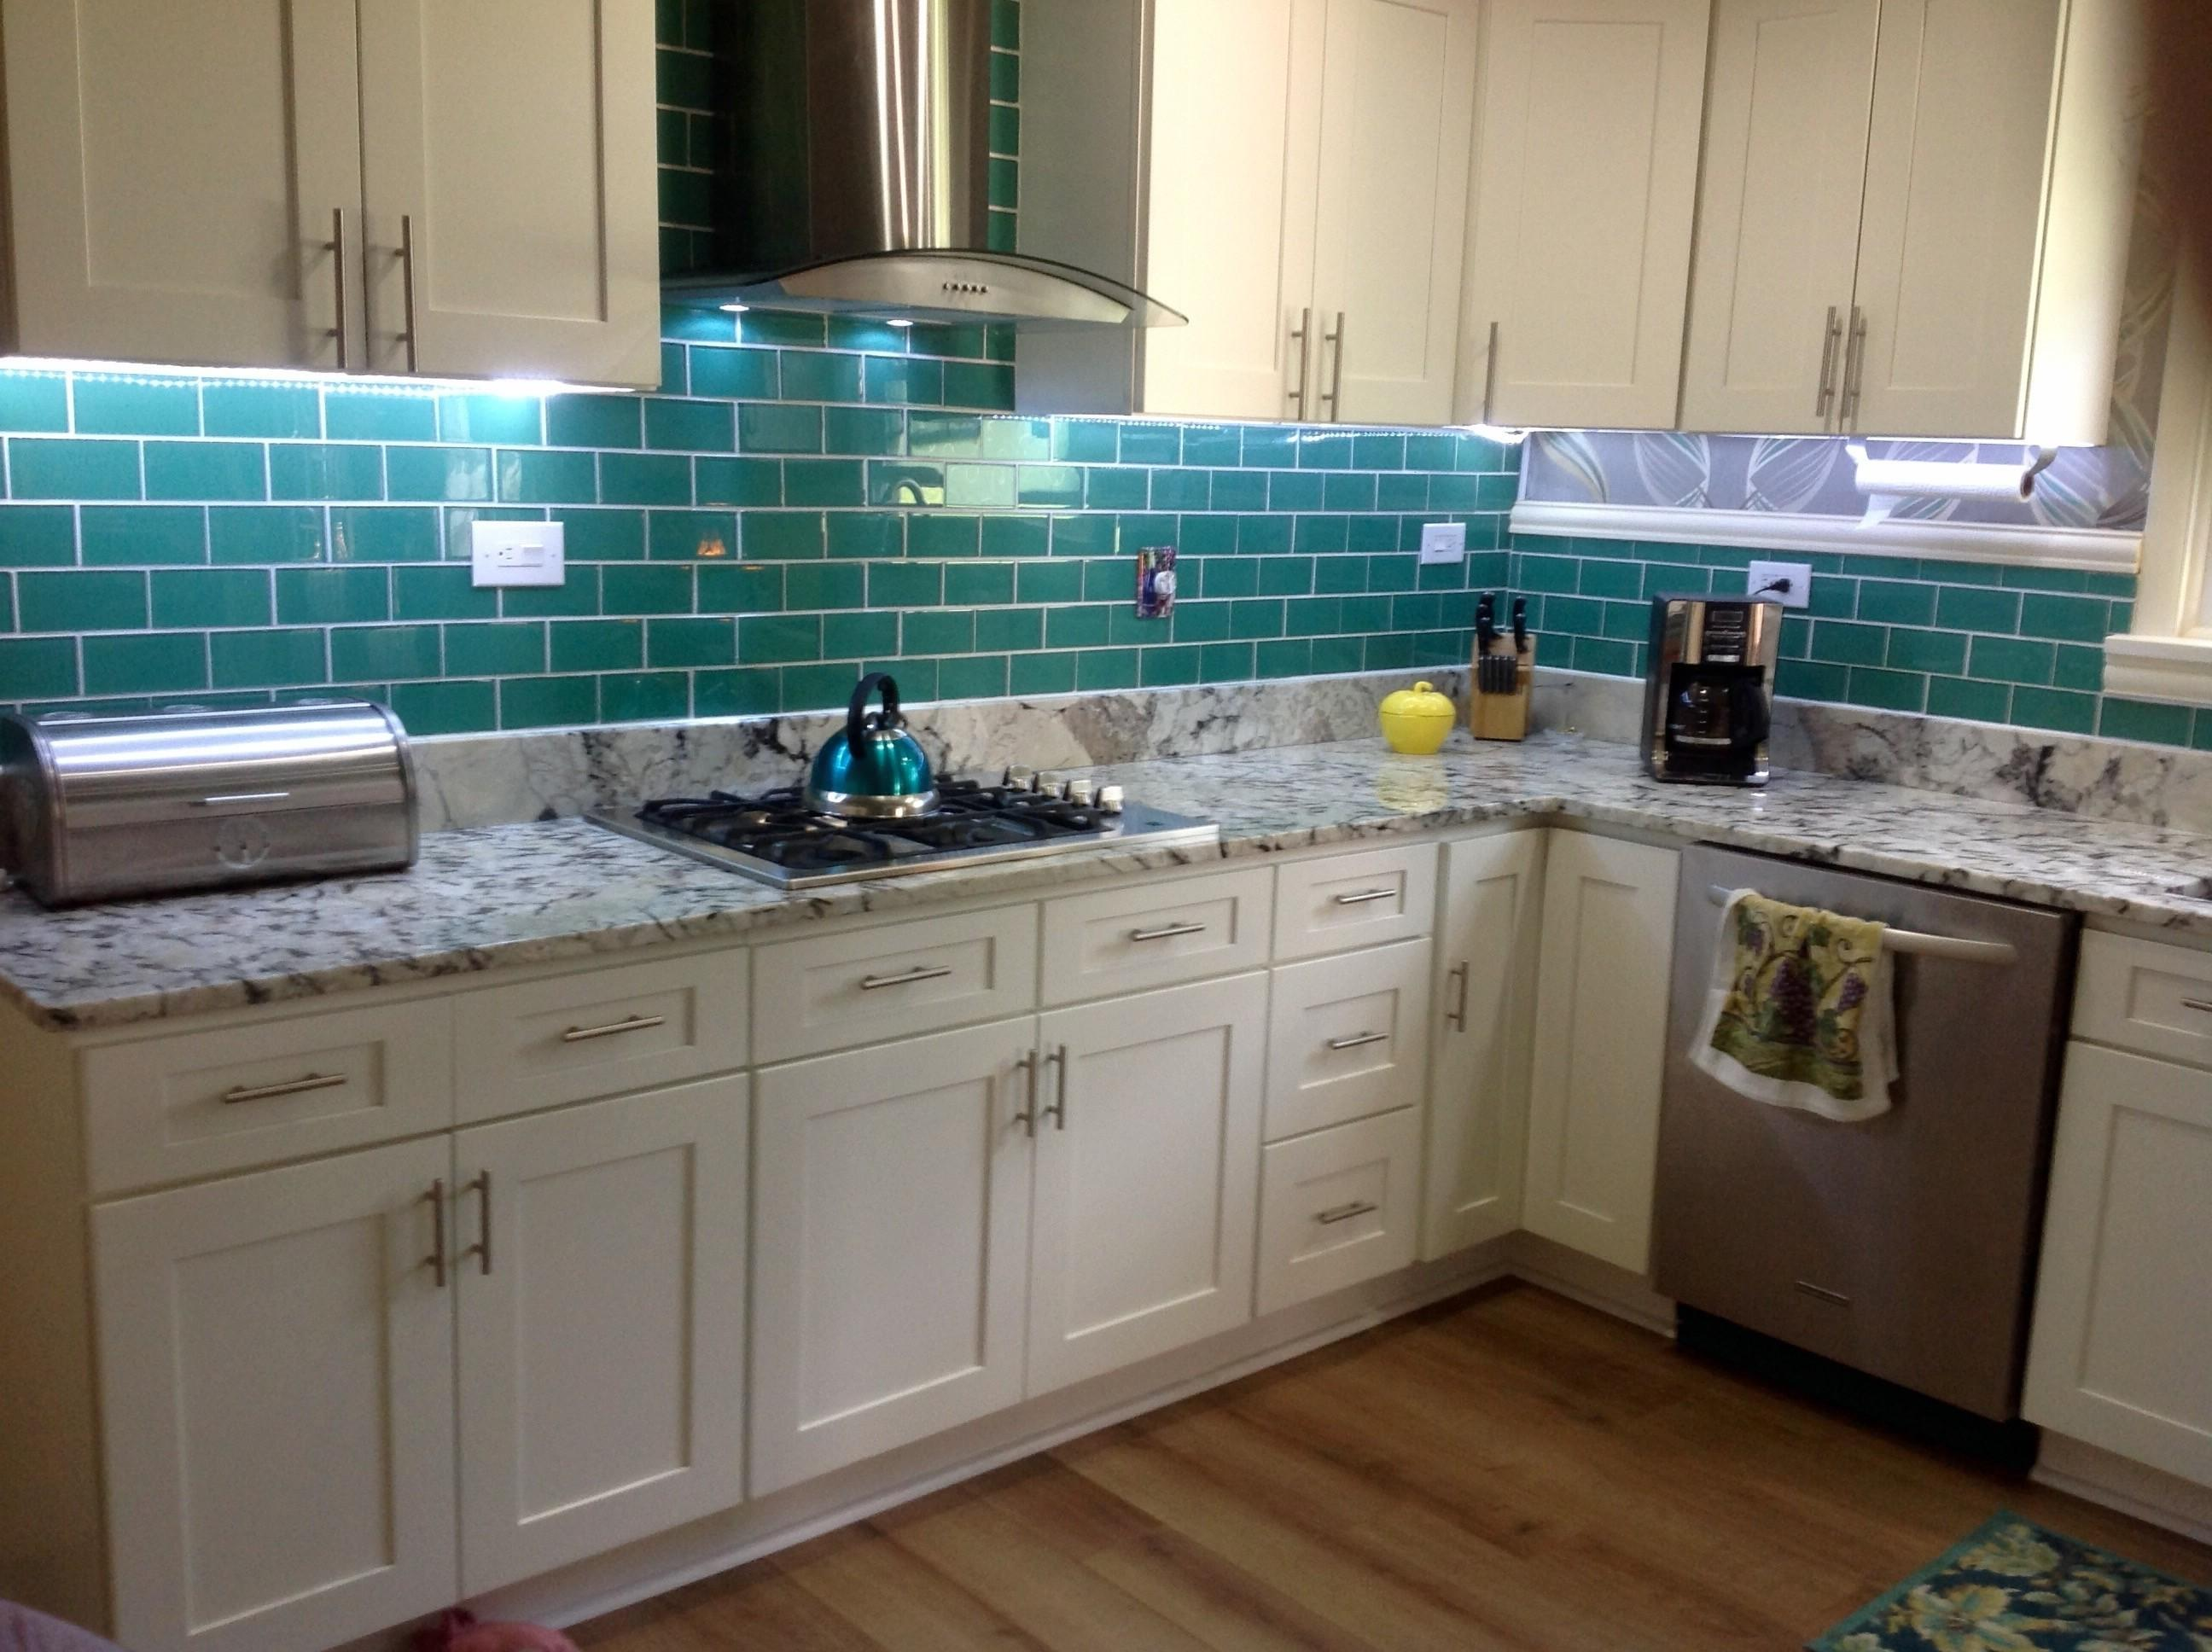 Wall Tiles Kitchen Backsplash Decor Trends Mosaic